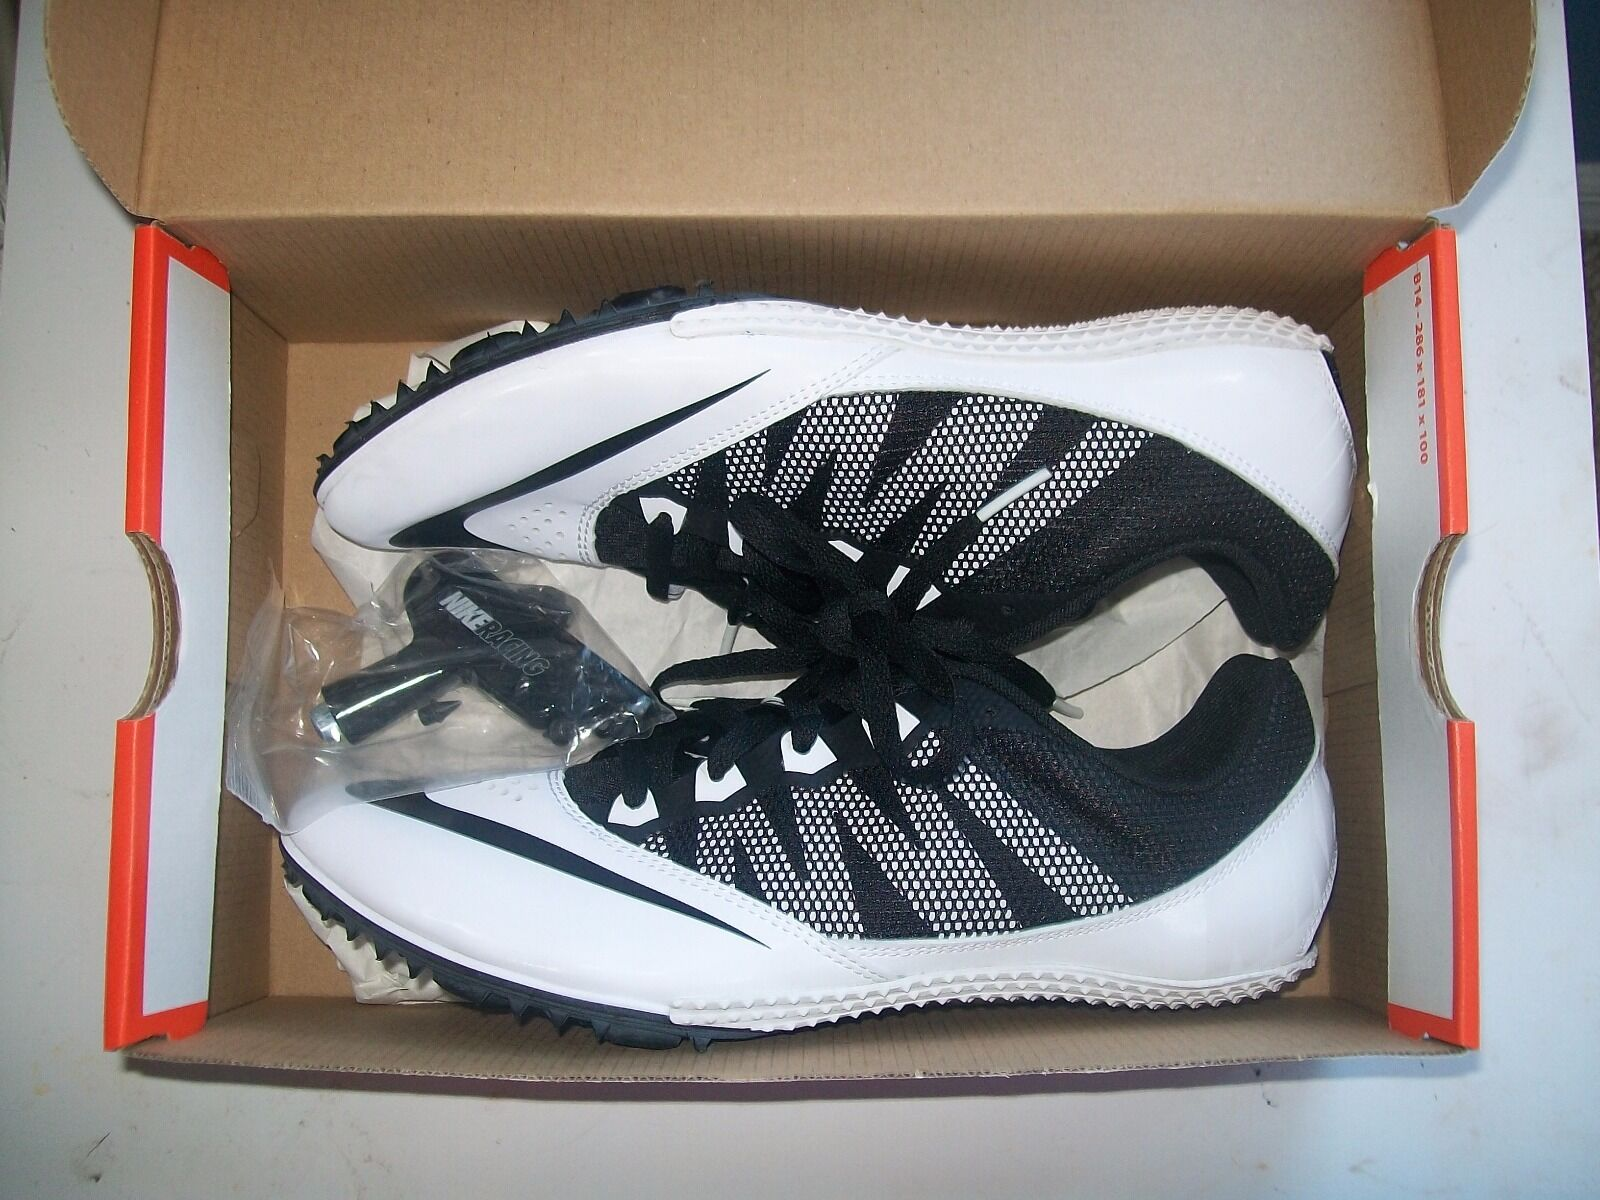 Women's Black/White Zoom Rival Spikes size 8.5